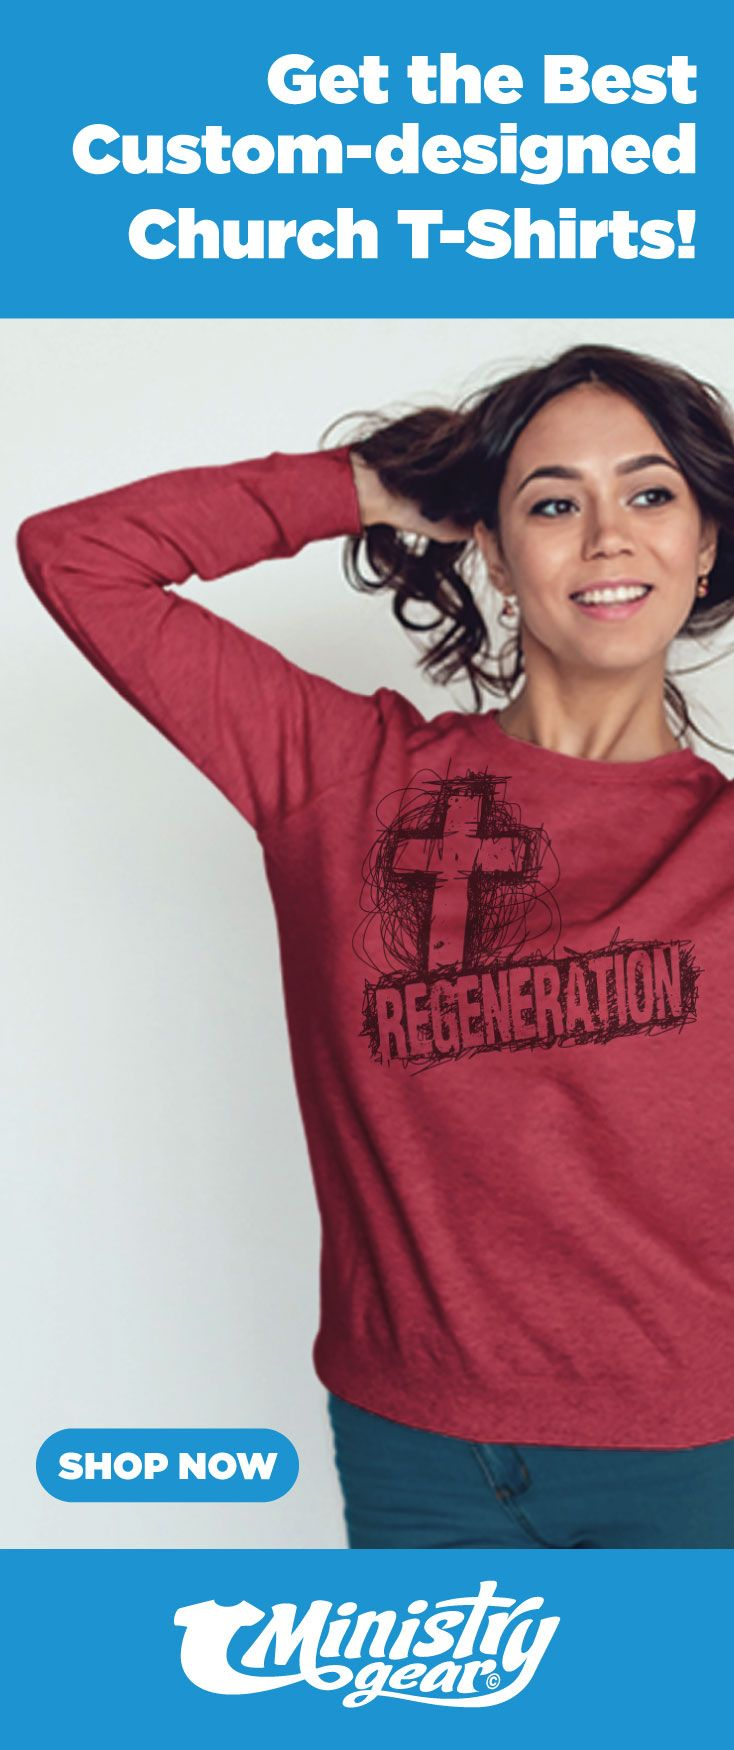 Church T-shirt design ideas and solutions for your ministry